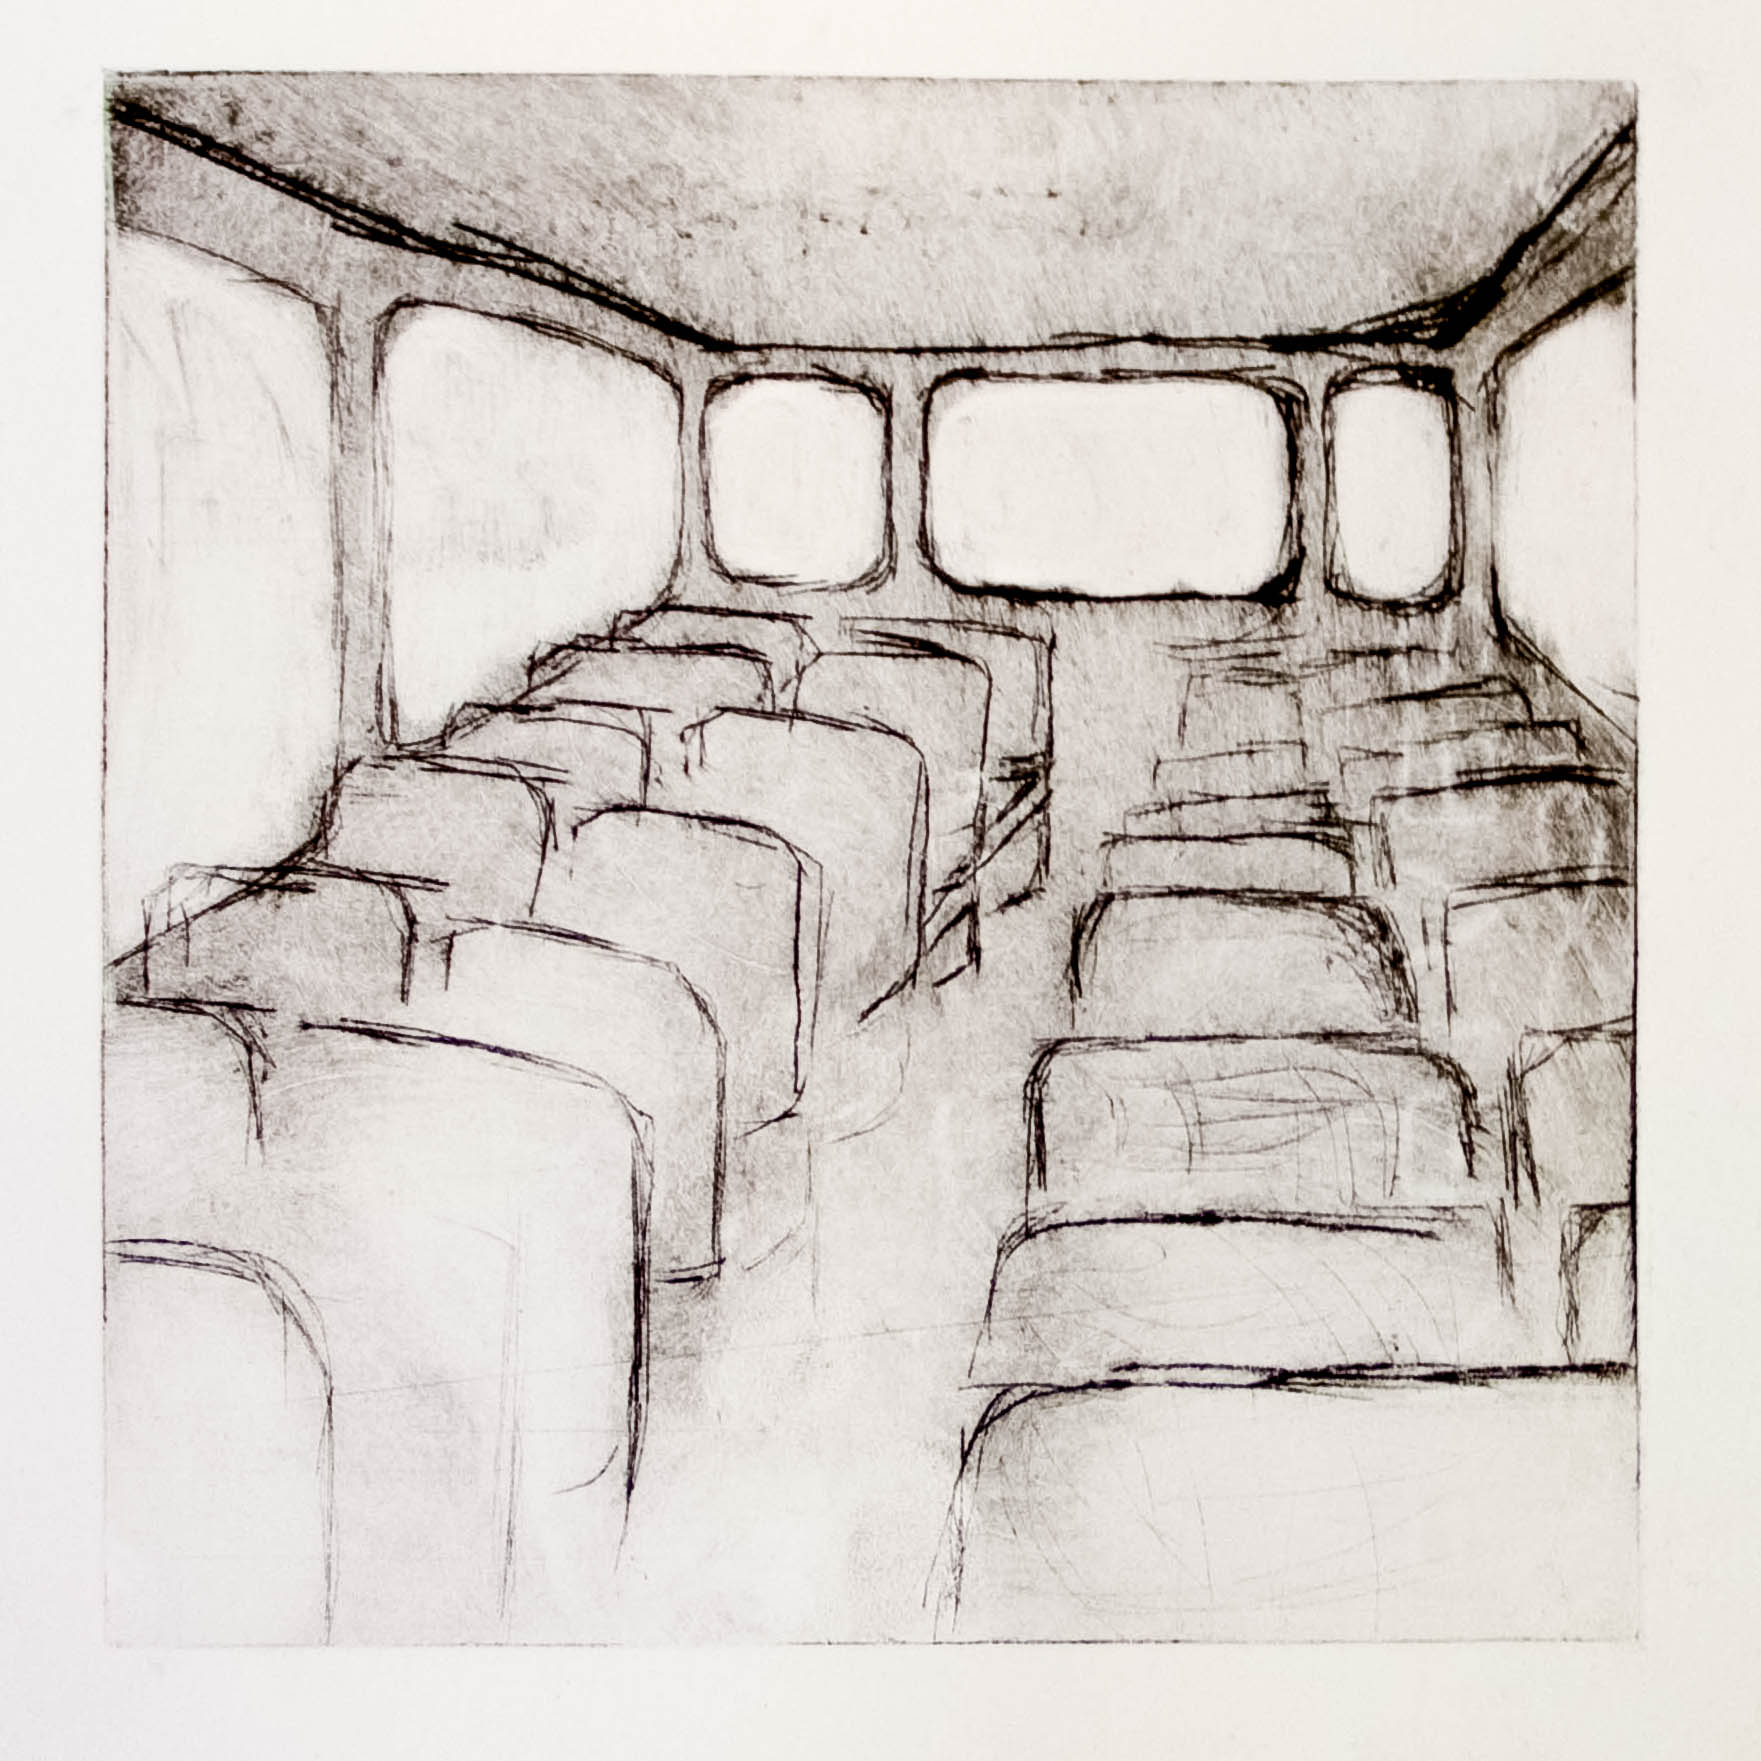 """Regina Viqueira, The bus during the strike, from """"Dismantle"""" series, 2013, intaglio print"""